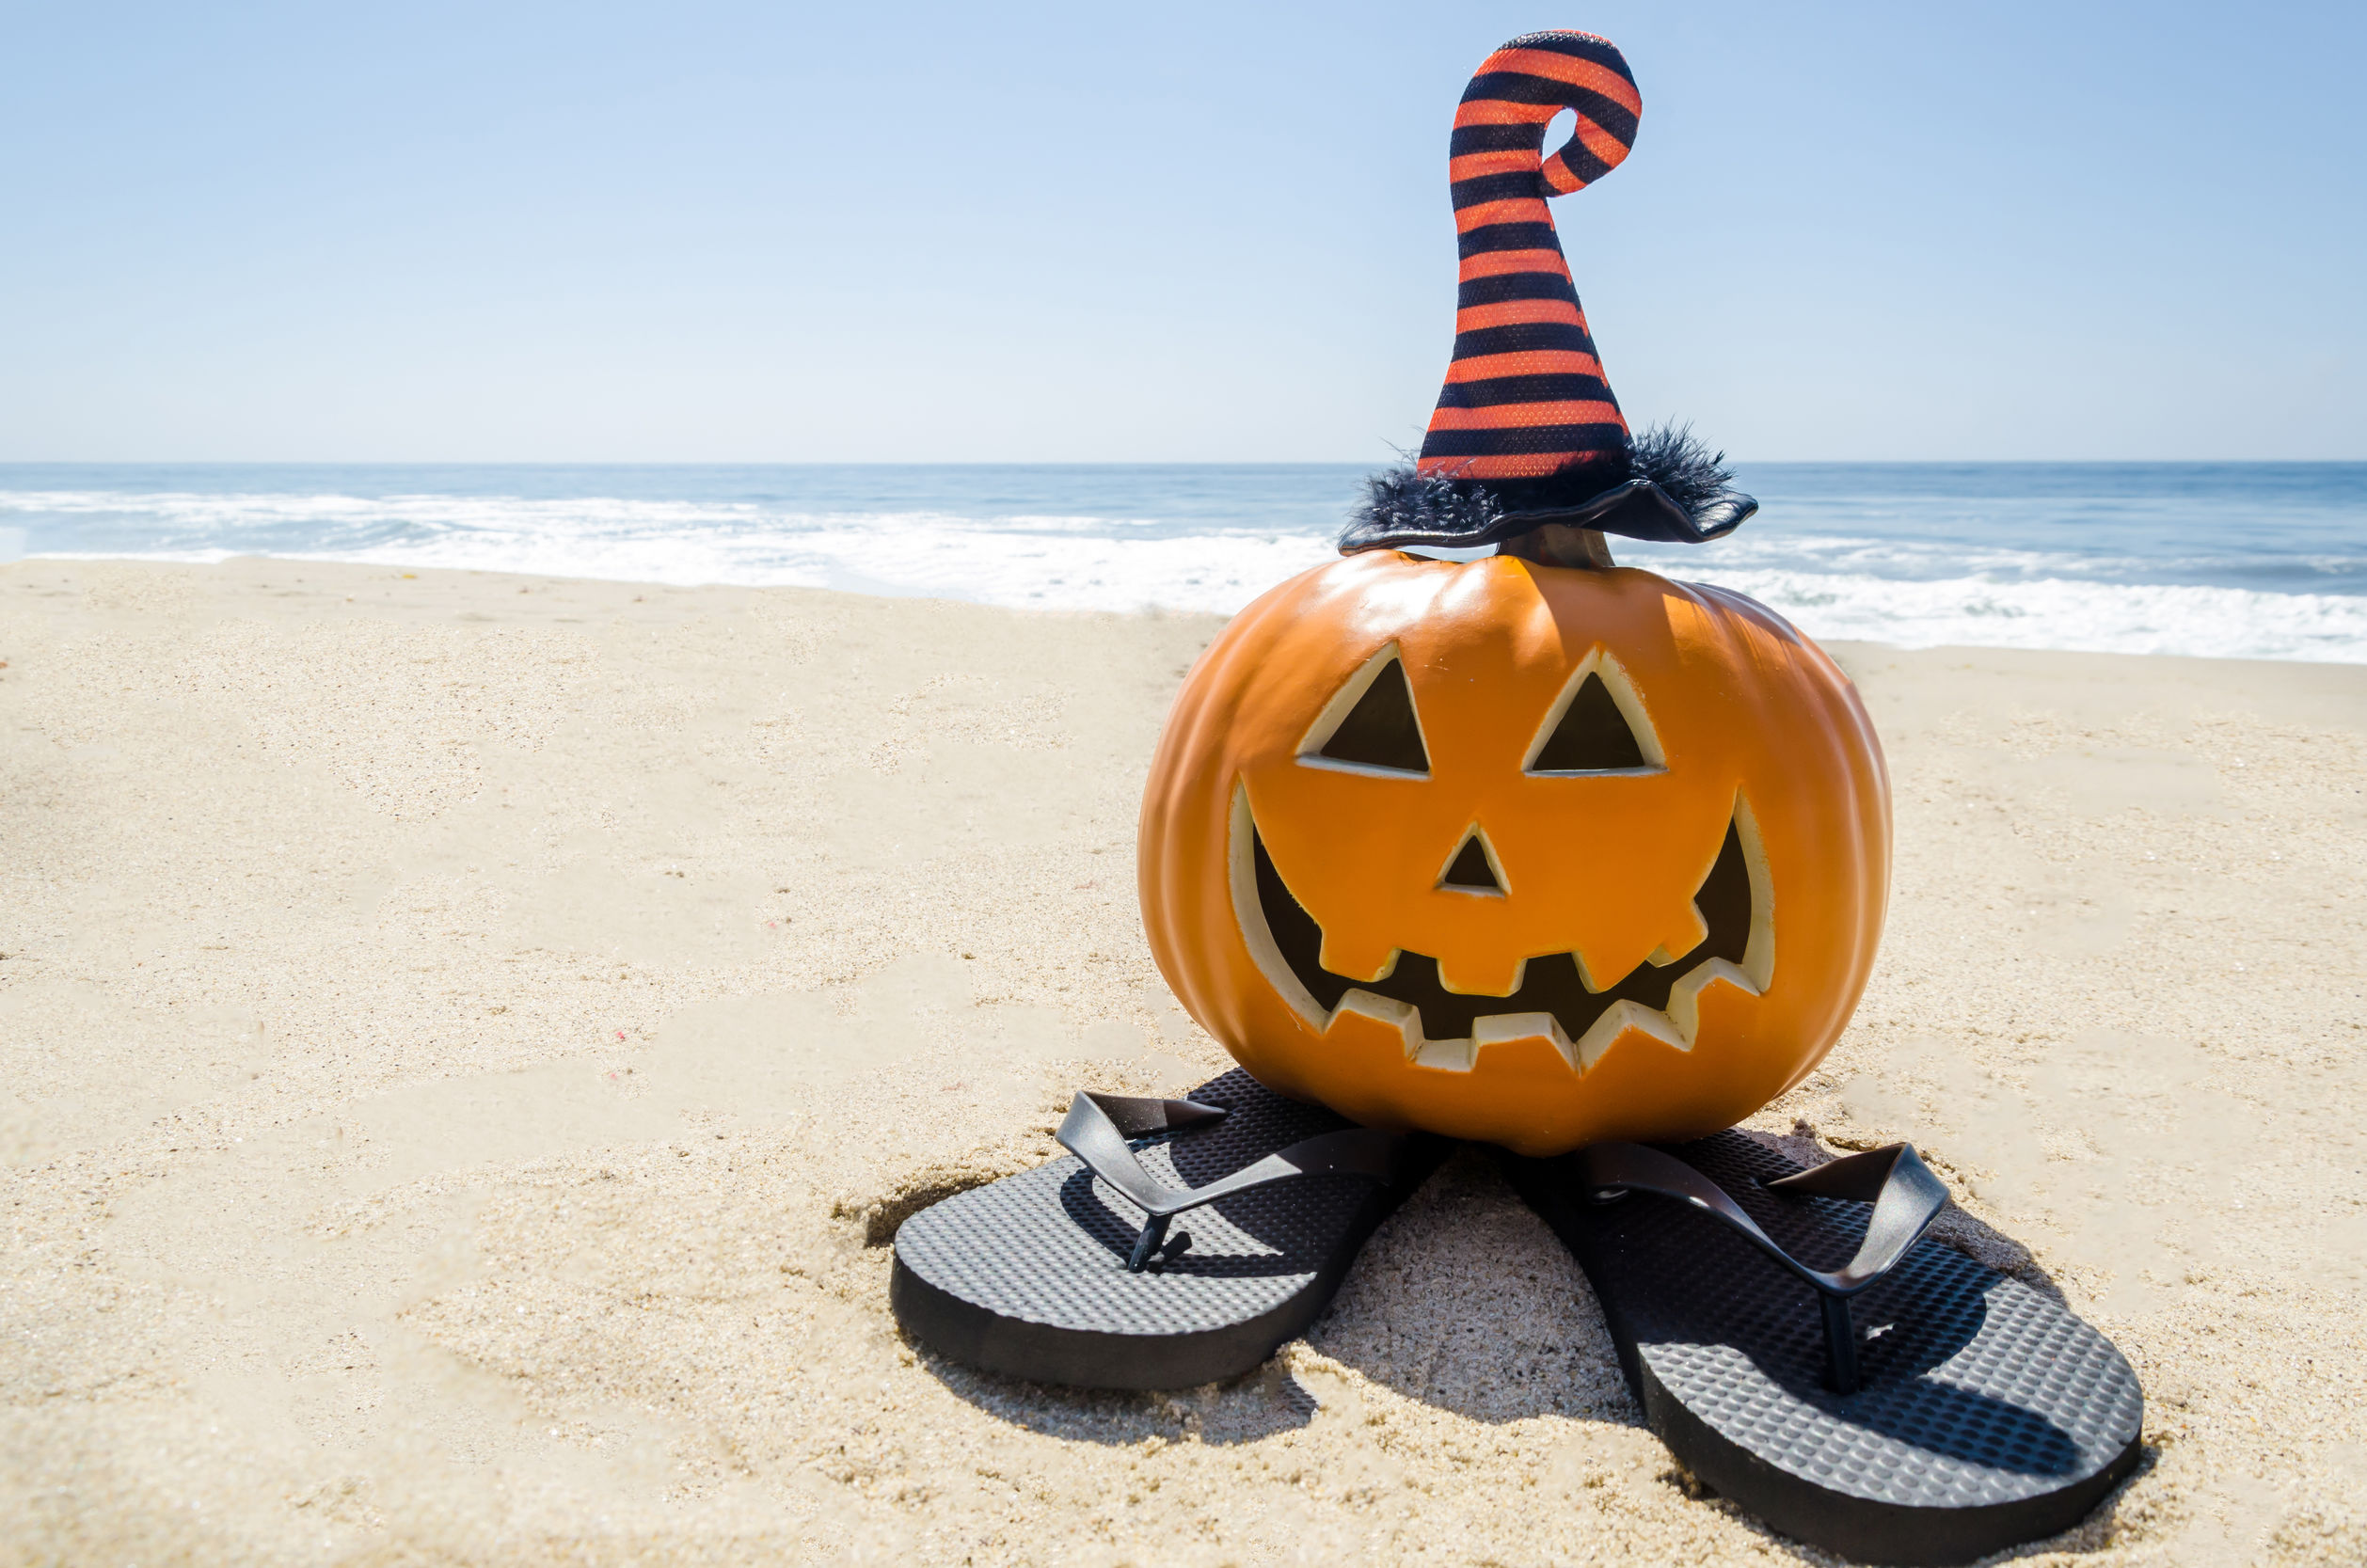 Panama City Halloween Events 2020 2020 October & Halloween Events in West End Panama City Beach